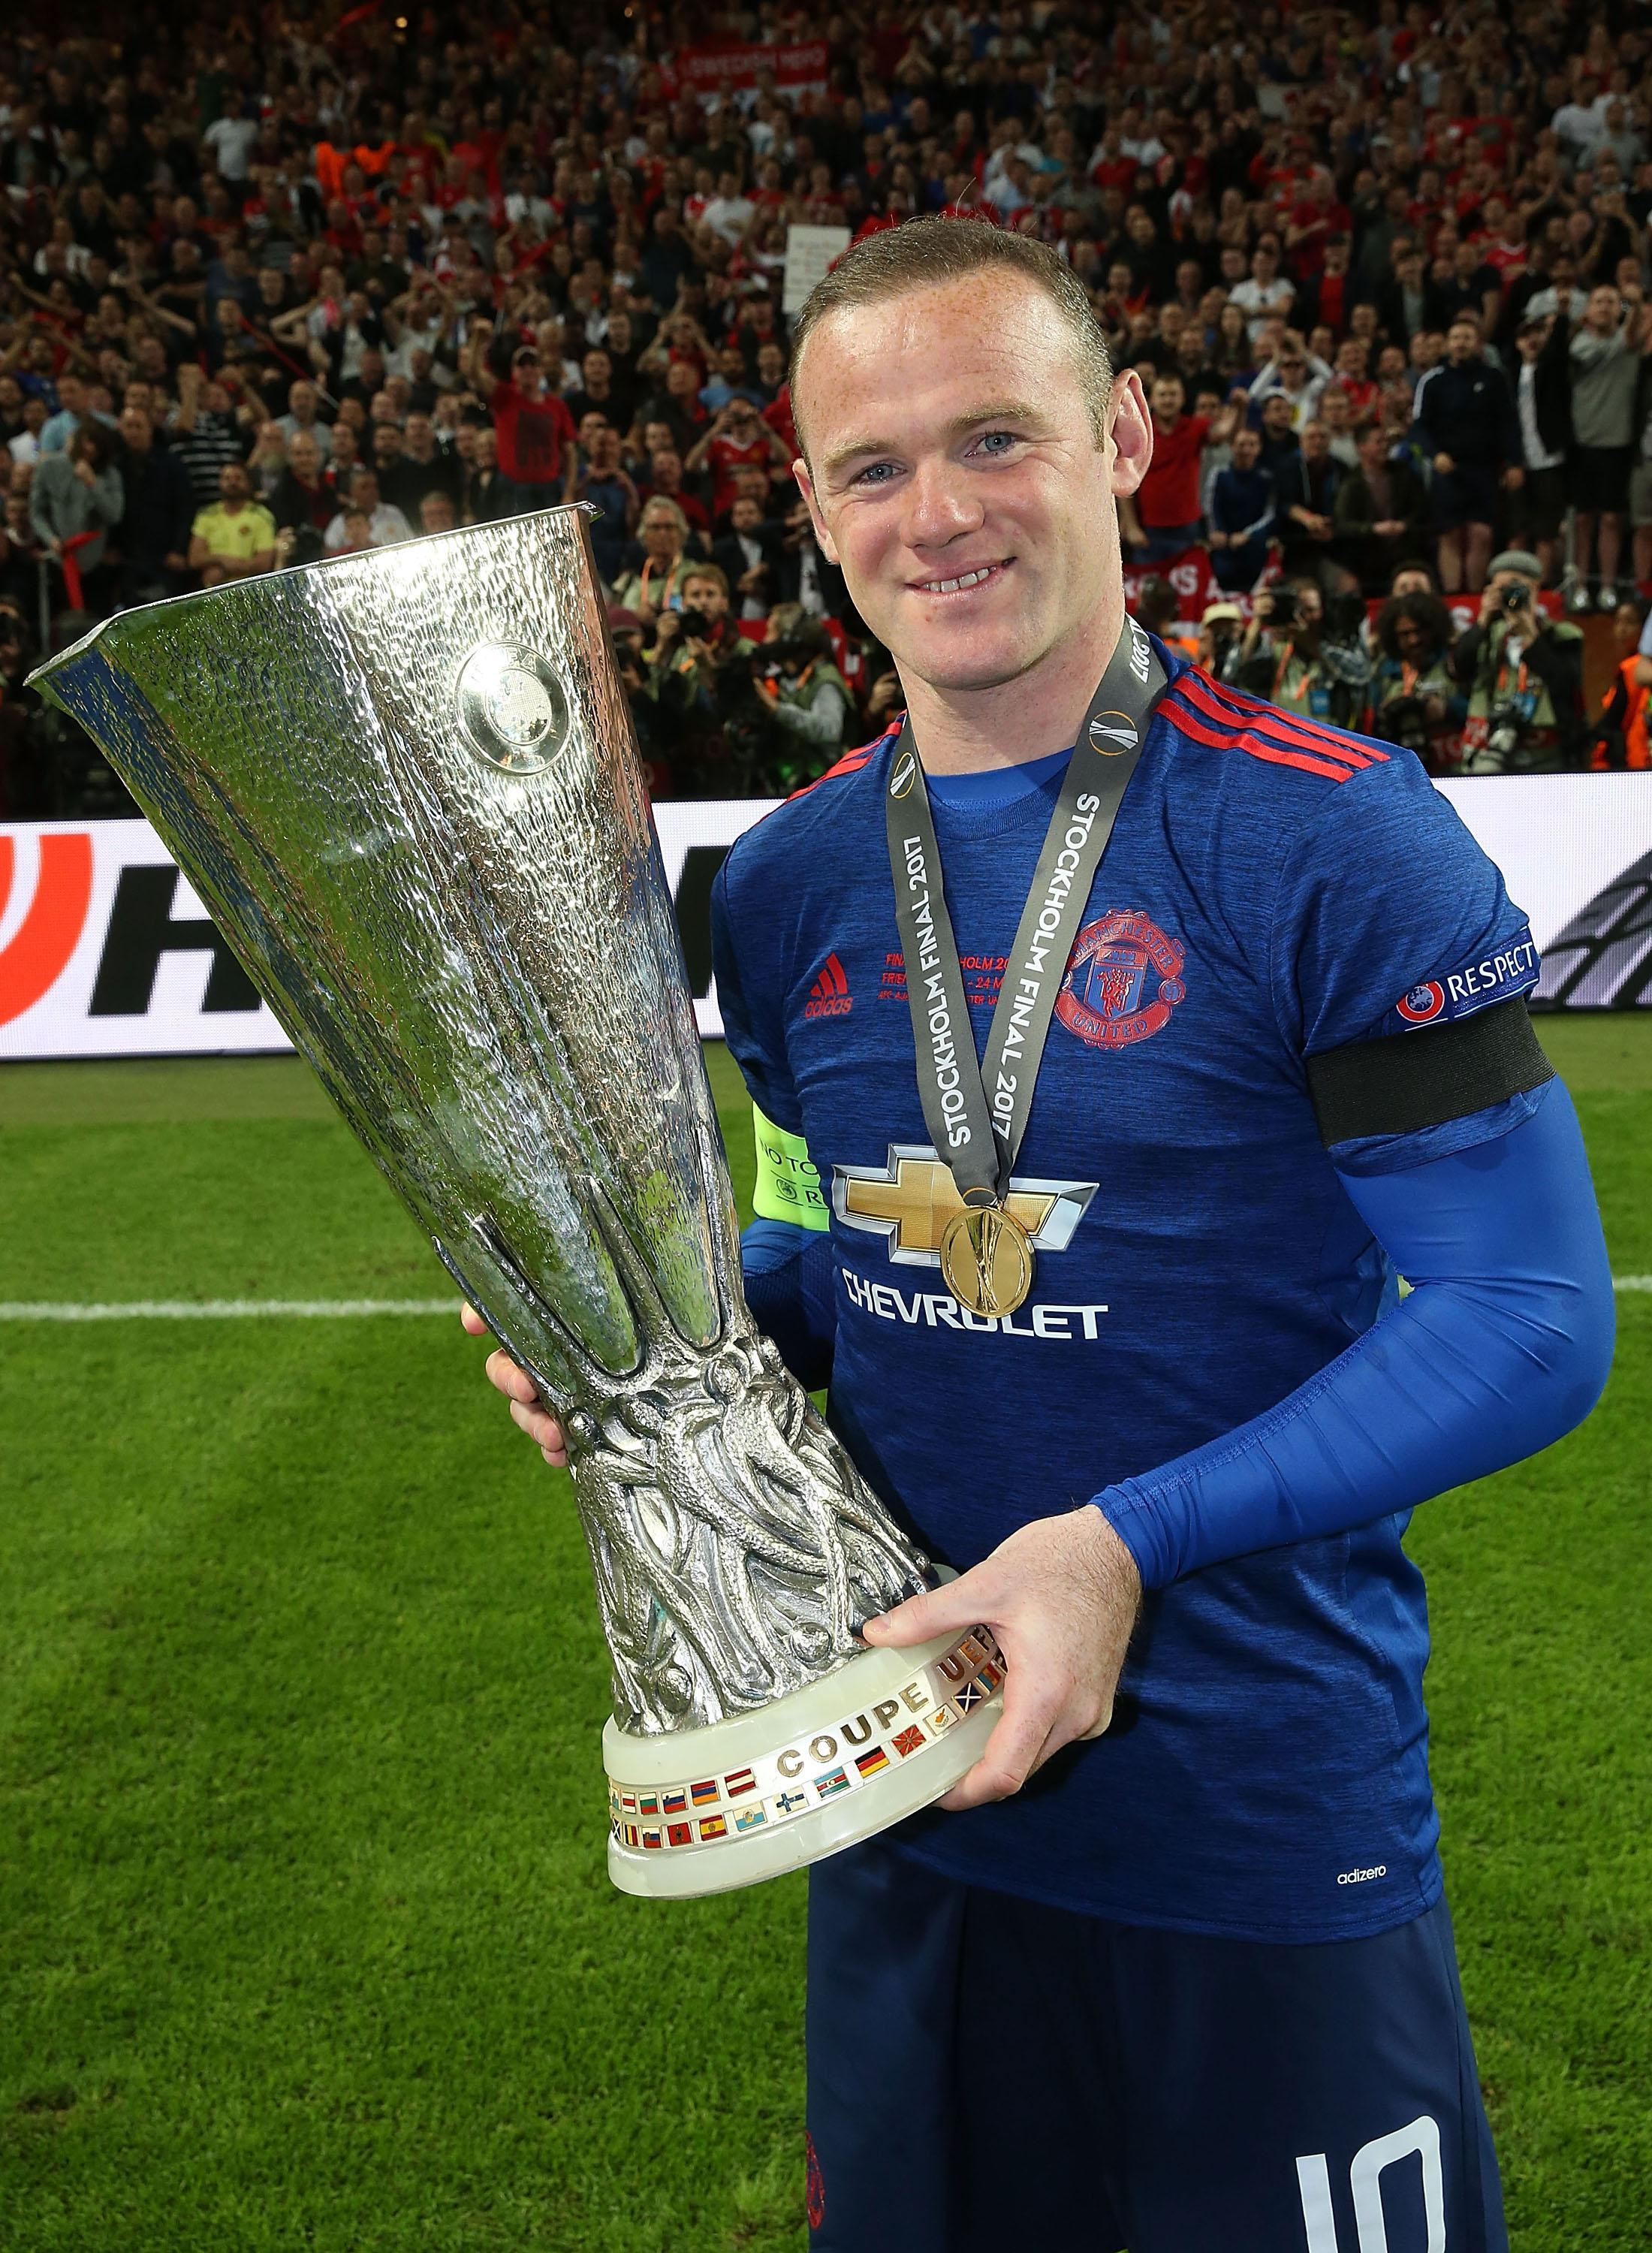 Man United's win added another layer of prestige to the Europa League